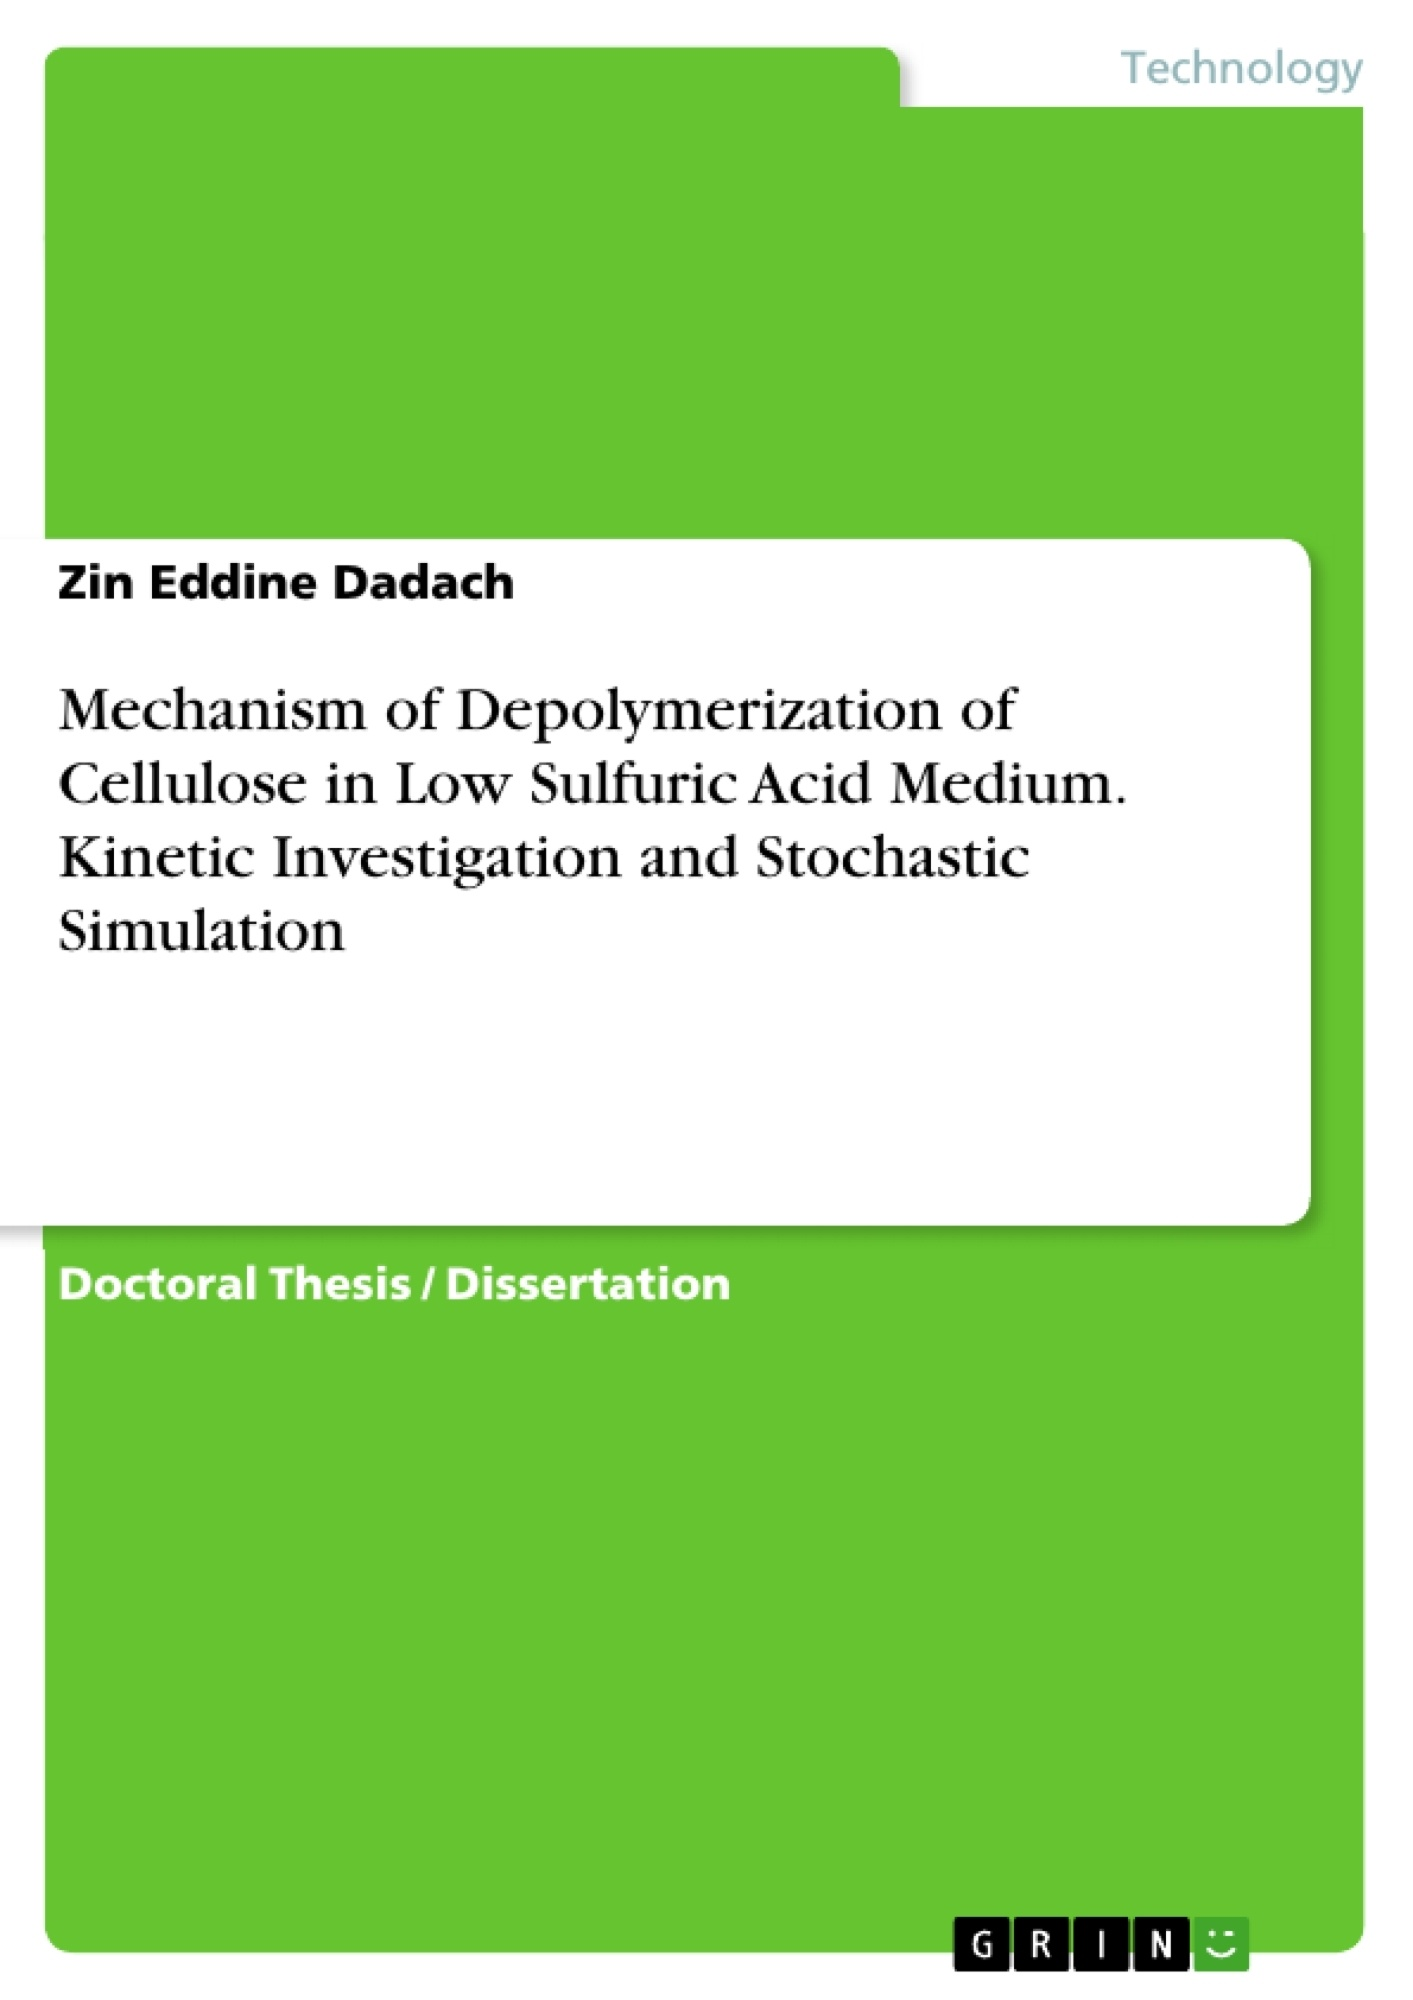 Title: Mechanism of Depolymerization of Cellulose in Low Sulfuric Acid Medium. Kinetic Investigation and Stochastic Simulation